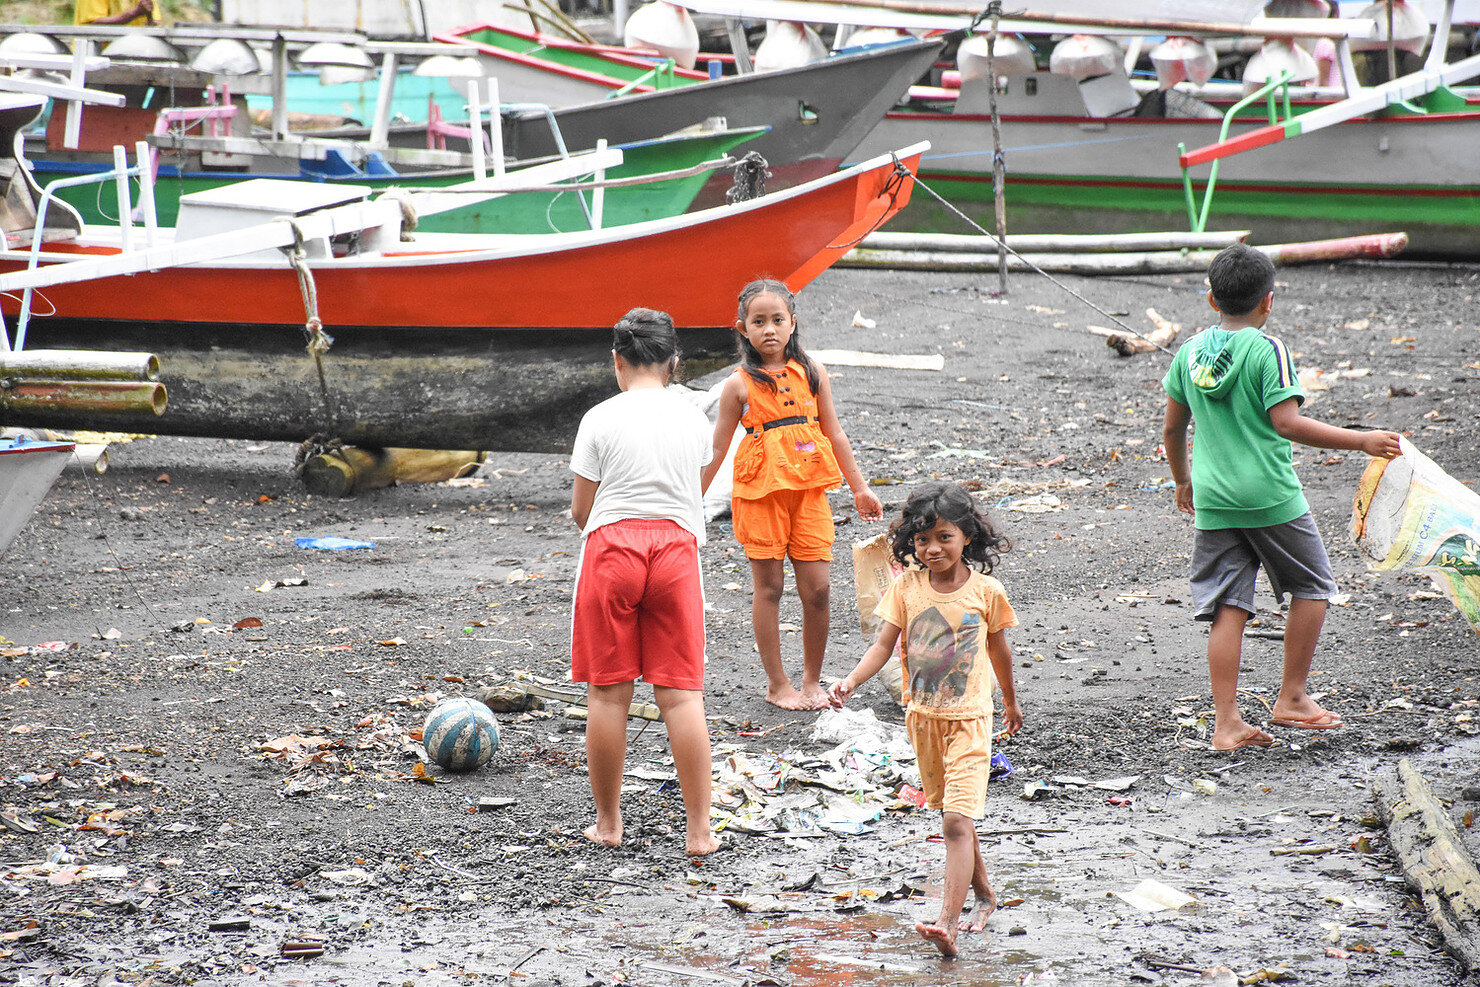 Immediately after the Waste Bank Opening, village children went to the beach to start collecting plastic